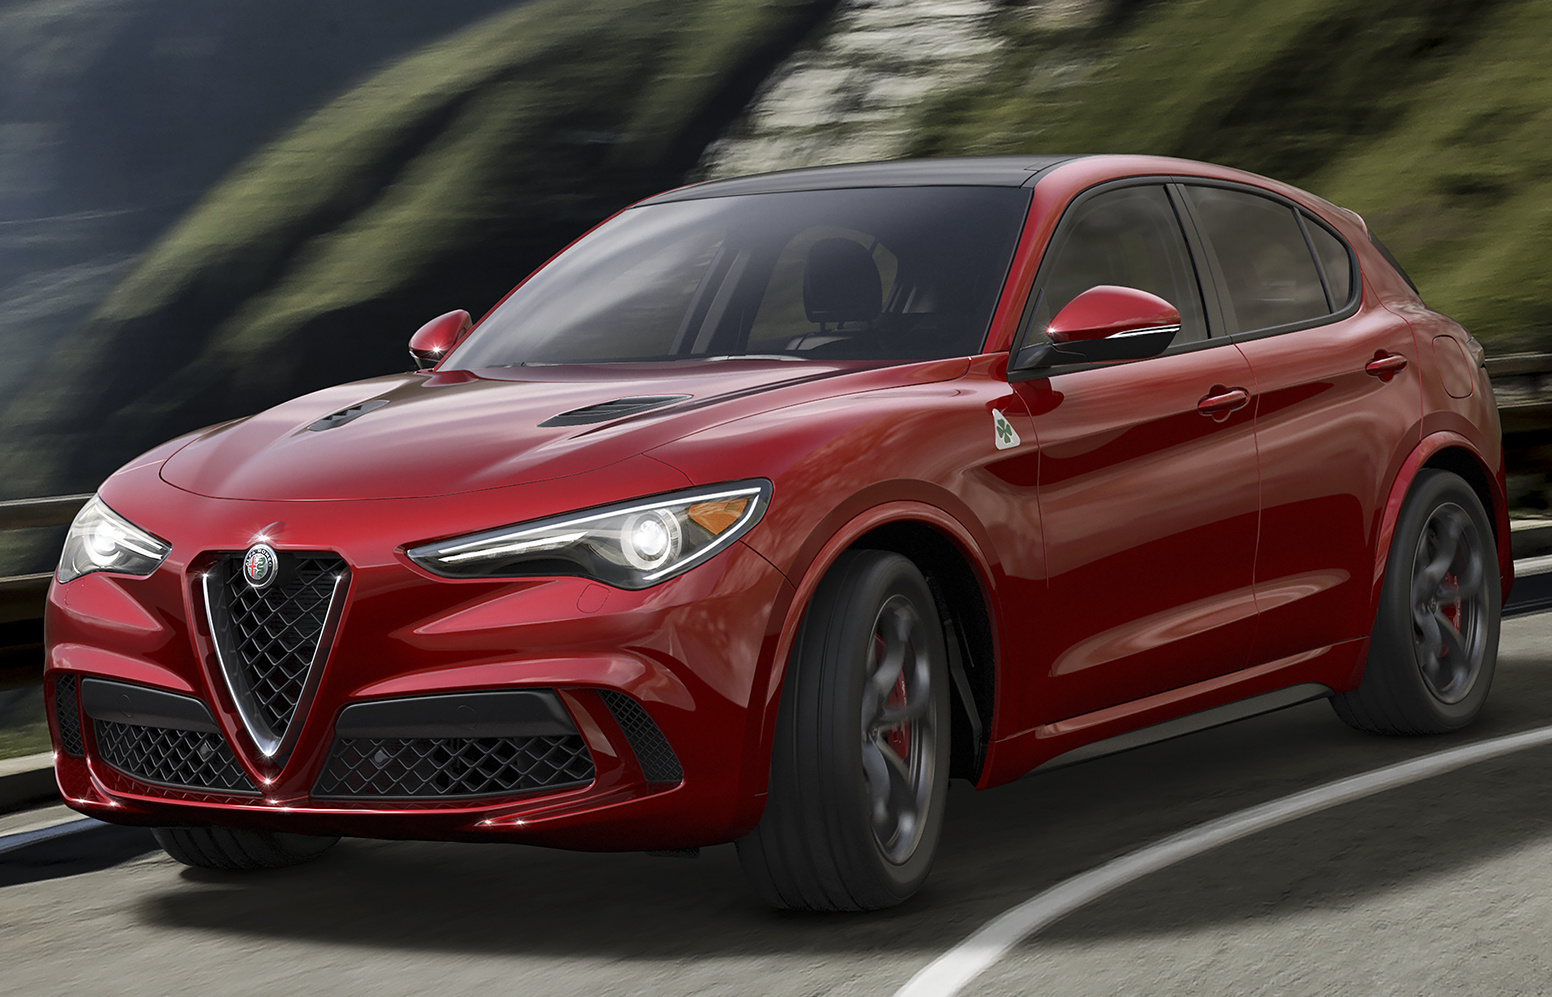 2018 alfa romeo stelvio for sale in baltimore md cargurus. Black Bedroom Furniture Sets. Home Design Ideas